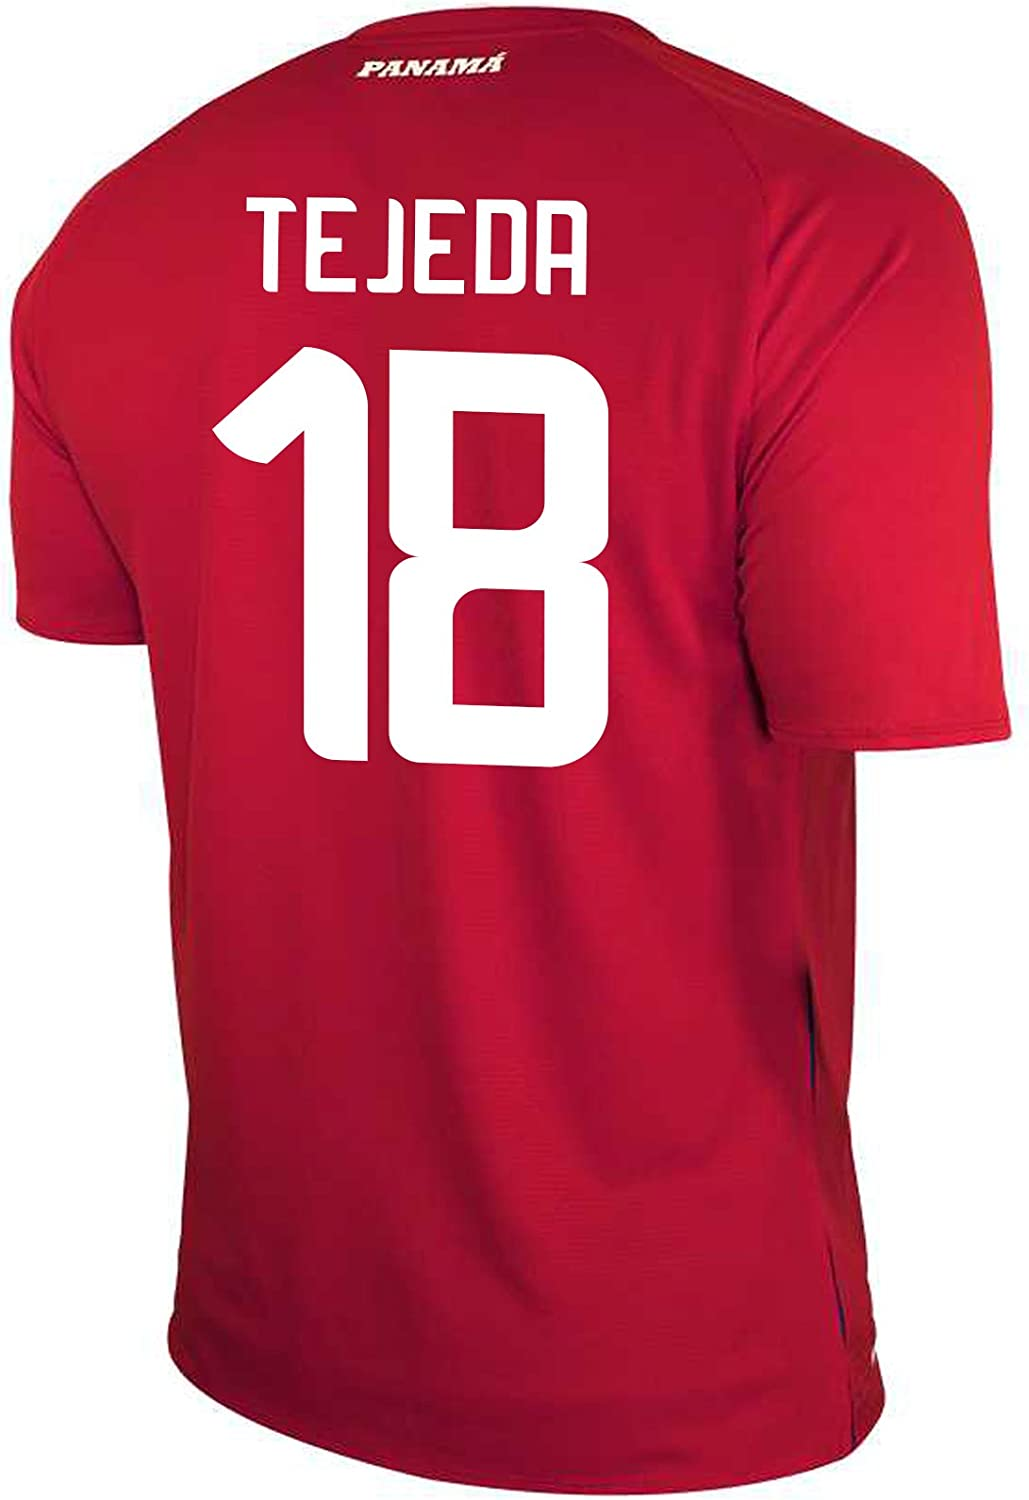 New Balance TEJEDA #18 Panama Home Soccer Men's Jersey FIFA World Cup Russia 2018